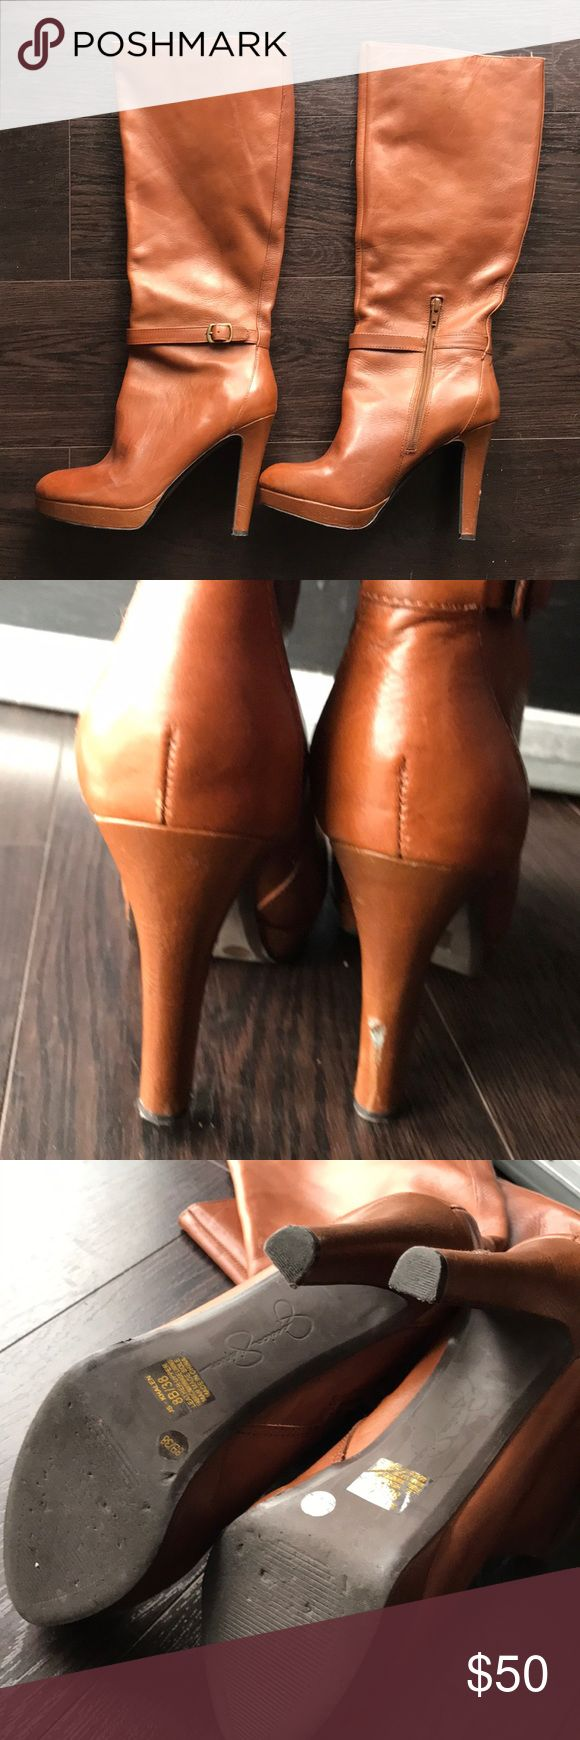 "Jessica Simpson Khalen Tall brown leather boots- 8 Jessica Simpson Khalen Tall brown leather boots- 8. Good used condition. Super soft leather. 5"" heel. One pretty big scuffmark on the right back heel.  Otherwise perfect. Bad ass!  ❤️Make an offer! Please remember Poshmark takes 20% Sorry no trades ❤️I ship quickly! Please accept your packages on the app as soon as you receive them so that the sellers can be paid.  ❤️Please read all descriptions and note condition before you buy. Bundle…"